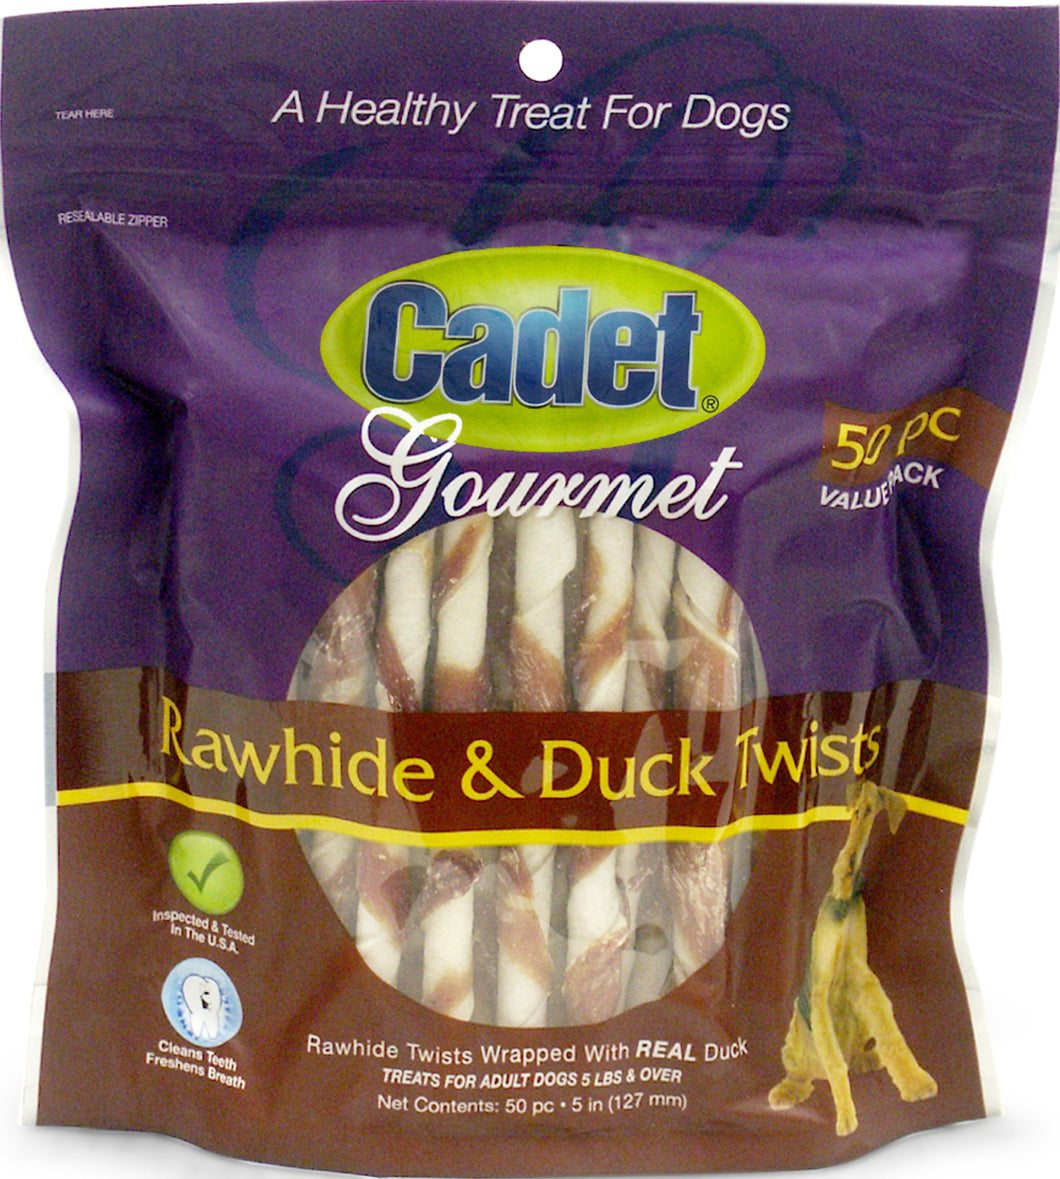 Cadet Gourmet Rawhide & Duck Twists